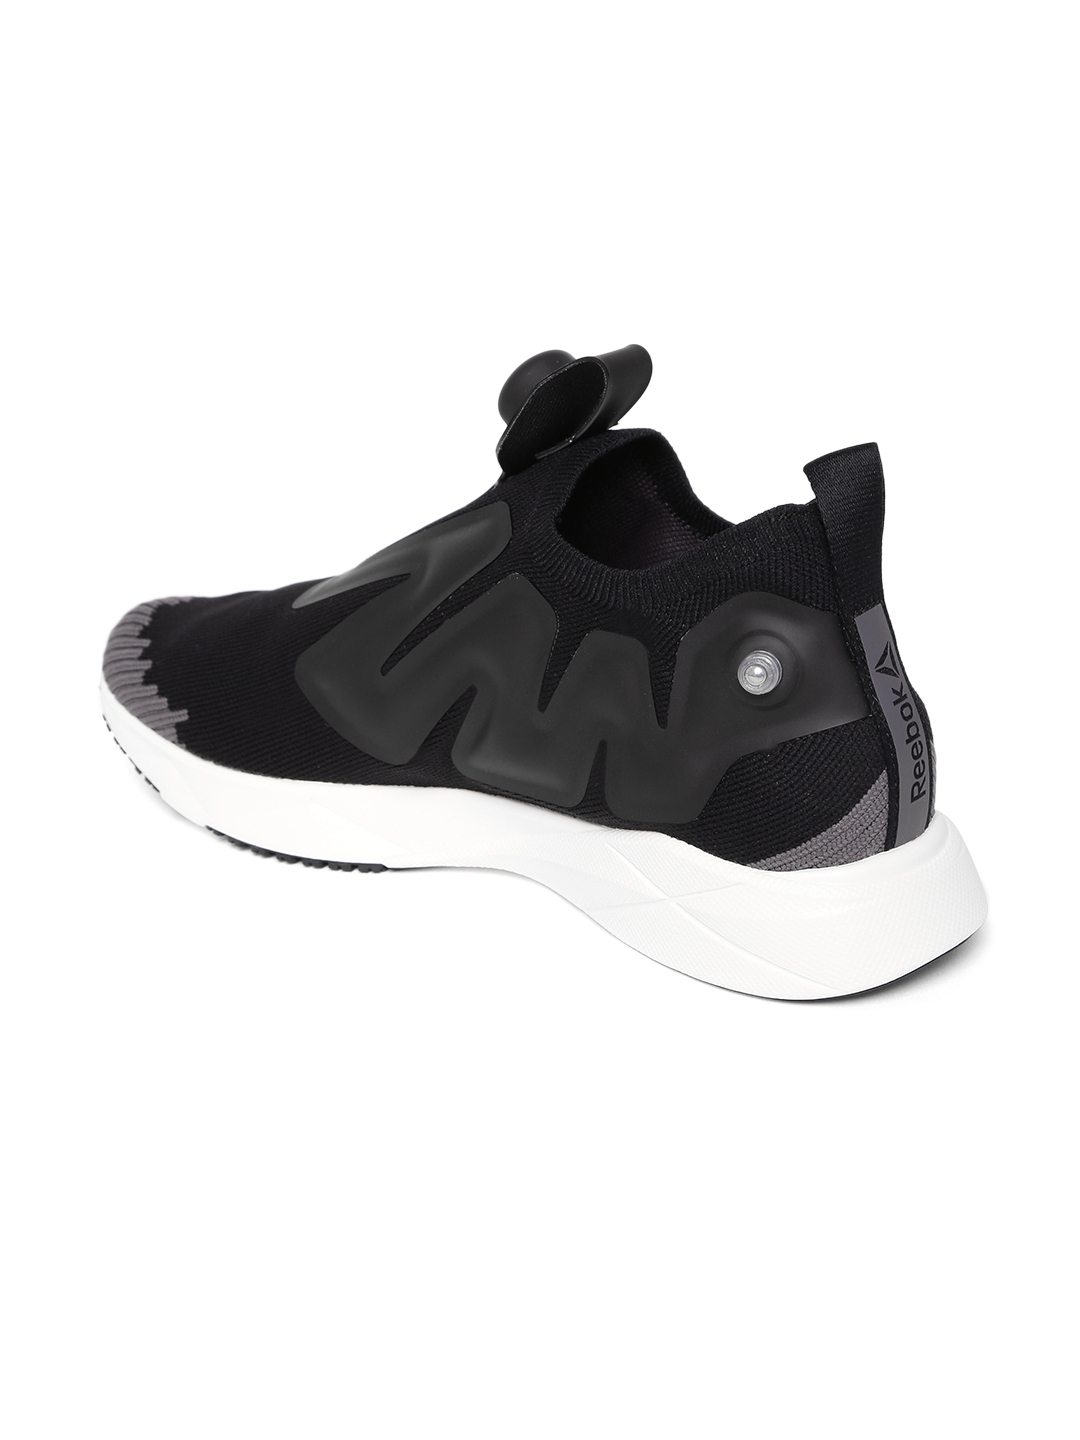 be331759 Buy Reebok Unisex Black Pump Supreme ULTK Running Shoes - Sports ...